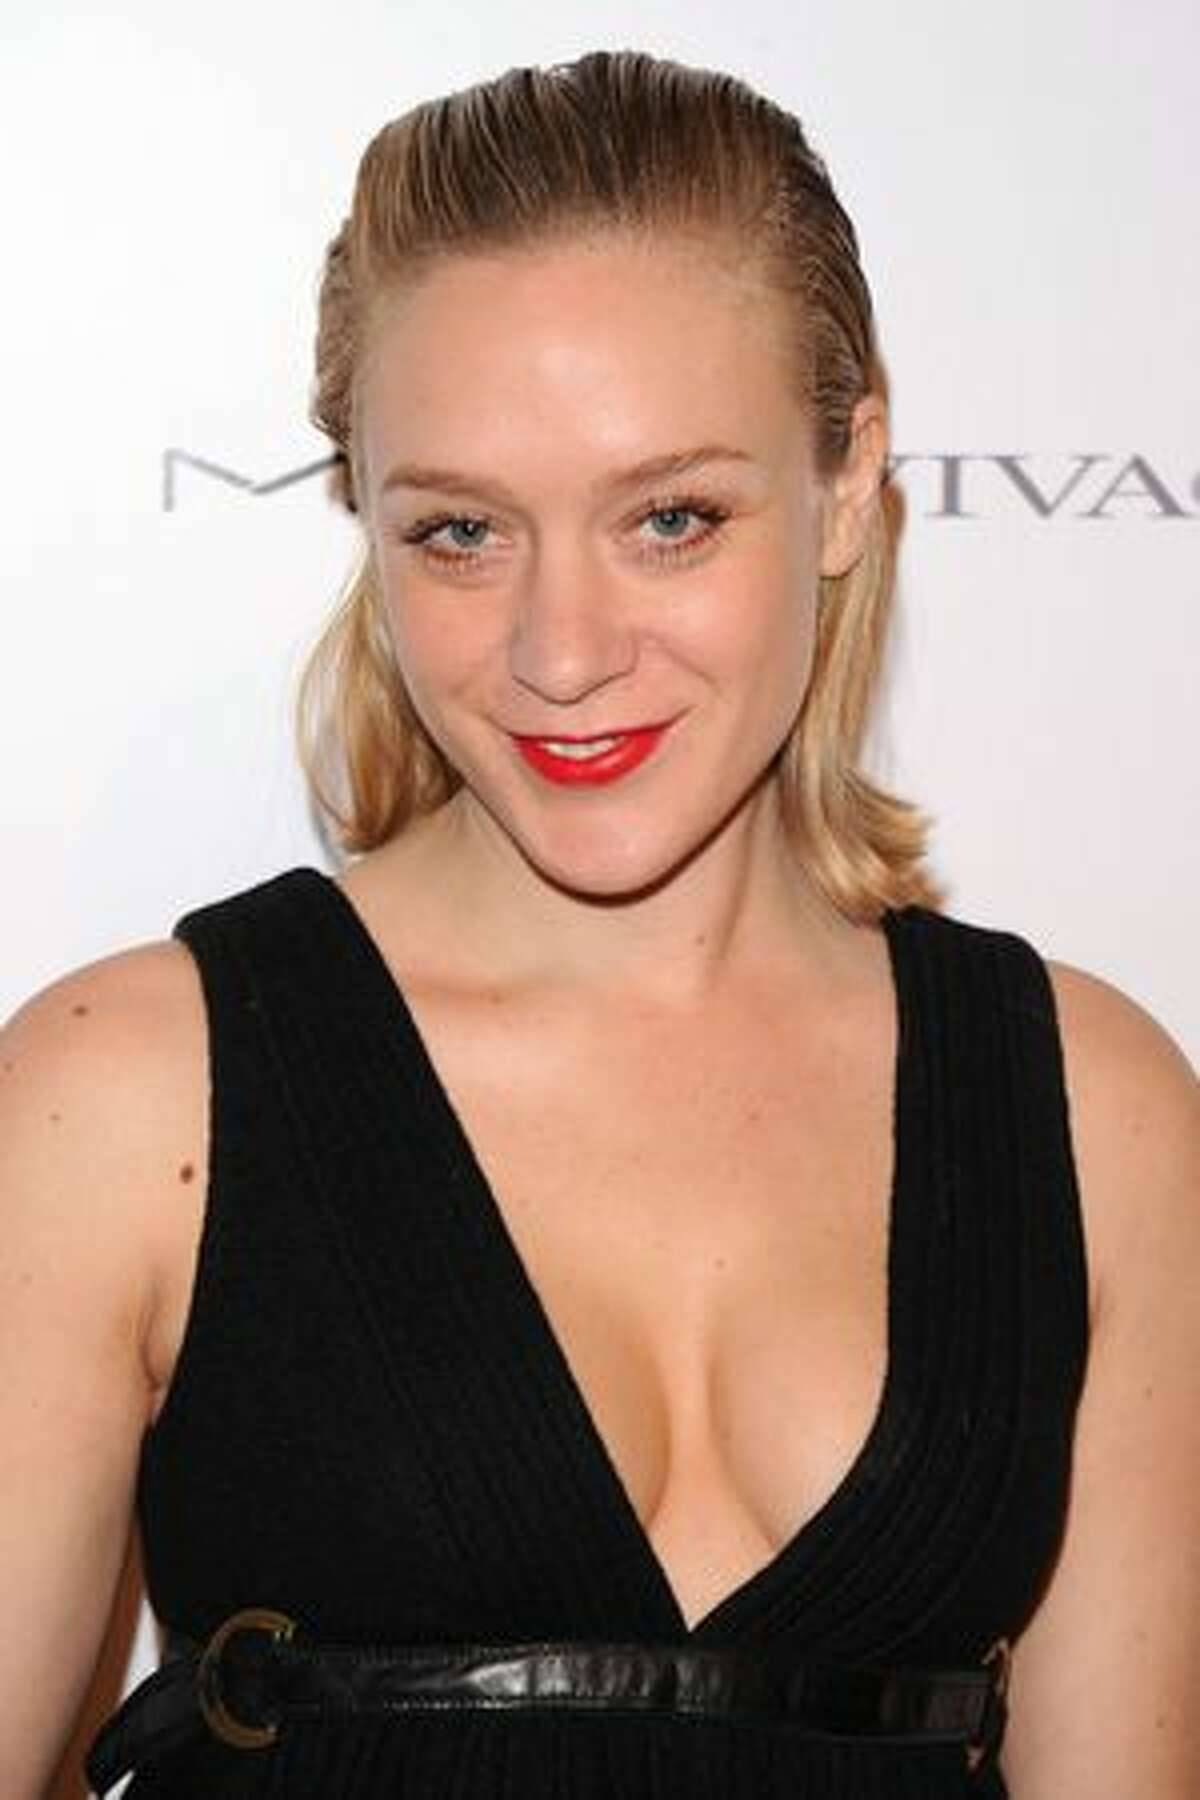 Actress Chloe Sevigny attends the amfAR New York Gala co-sponsored by M.A.C. Cosmetics to Kick Off Fall 2010 Fashion Week at Cipriani 42nd Street in New York, New York.